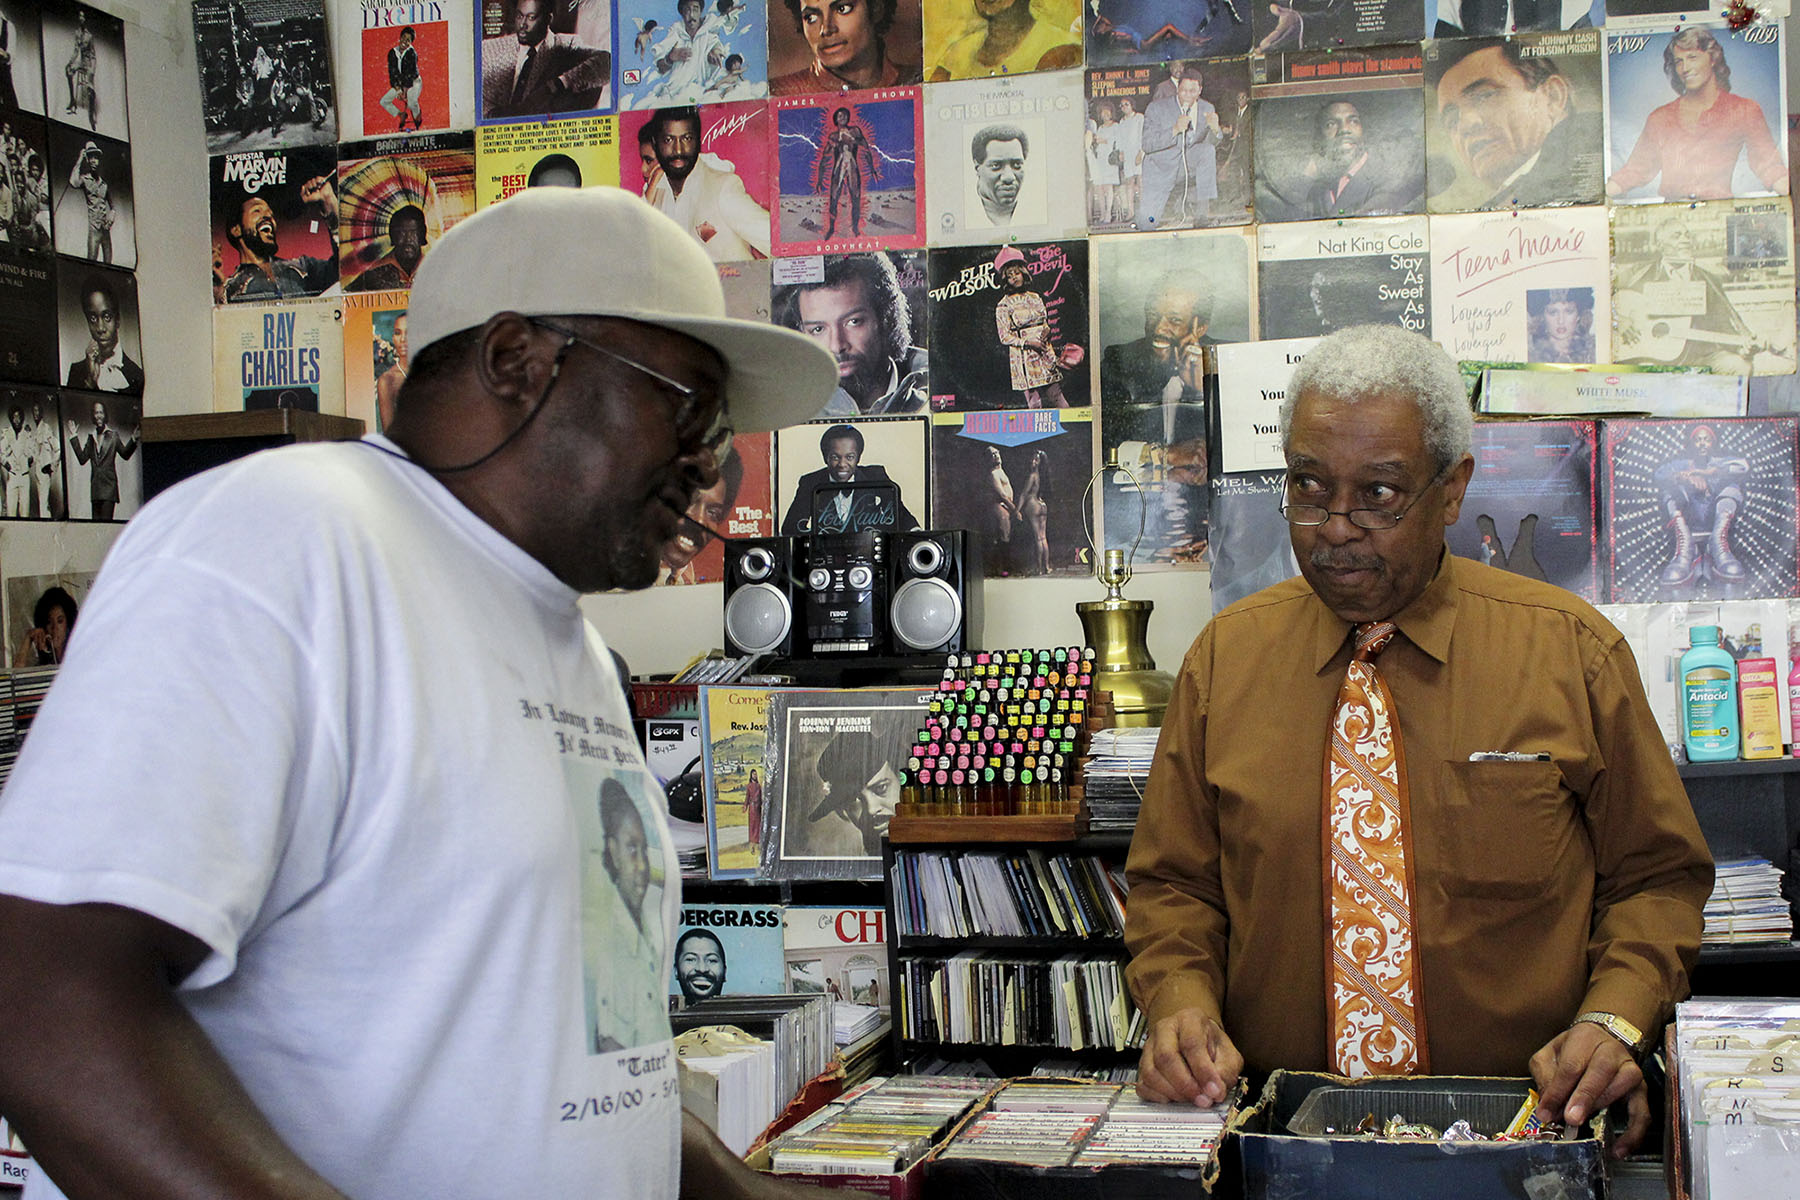 Lafayette Haynes helps a customer at Lafayette Old School Music Store, which he owns. During the civil rights era, Macon was a hub for both black businesses and entertainers, including Little Richard and Otis Redding. Consolidation reduced black influence in the area, Ficklin said. (Phillip Jackson/News21)